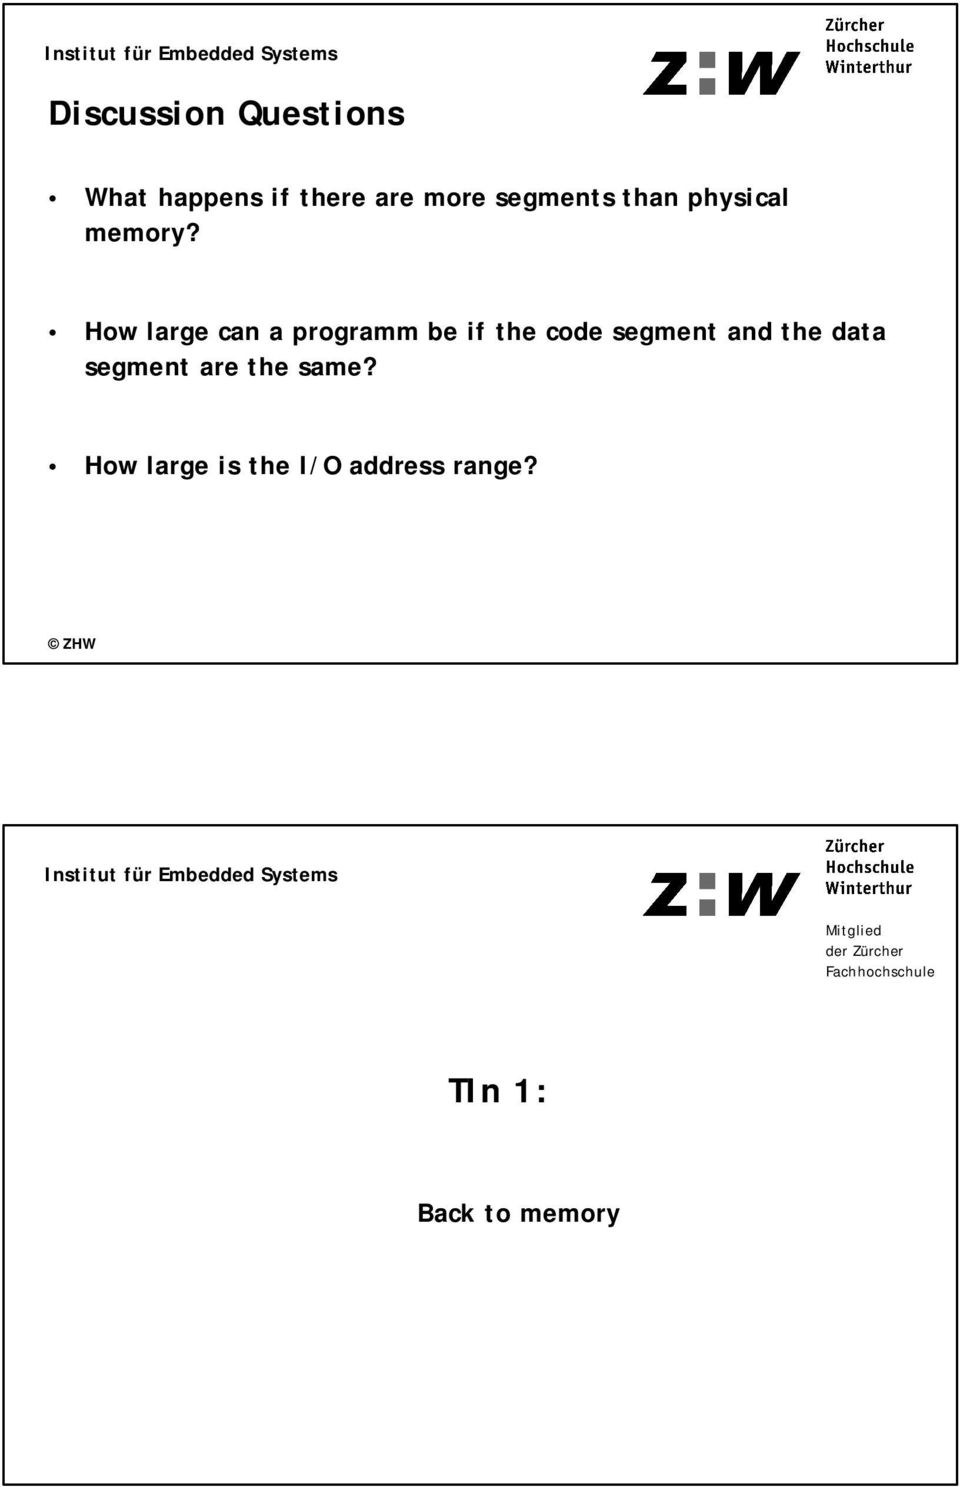 How large can a programm be if the code segment and the data